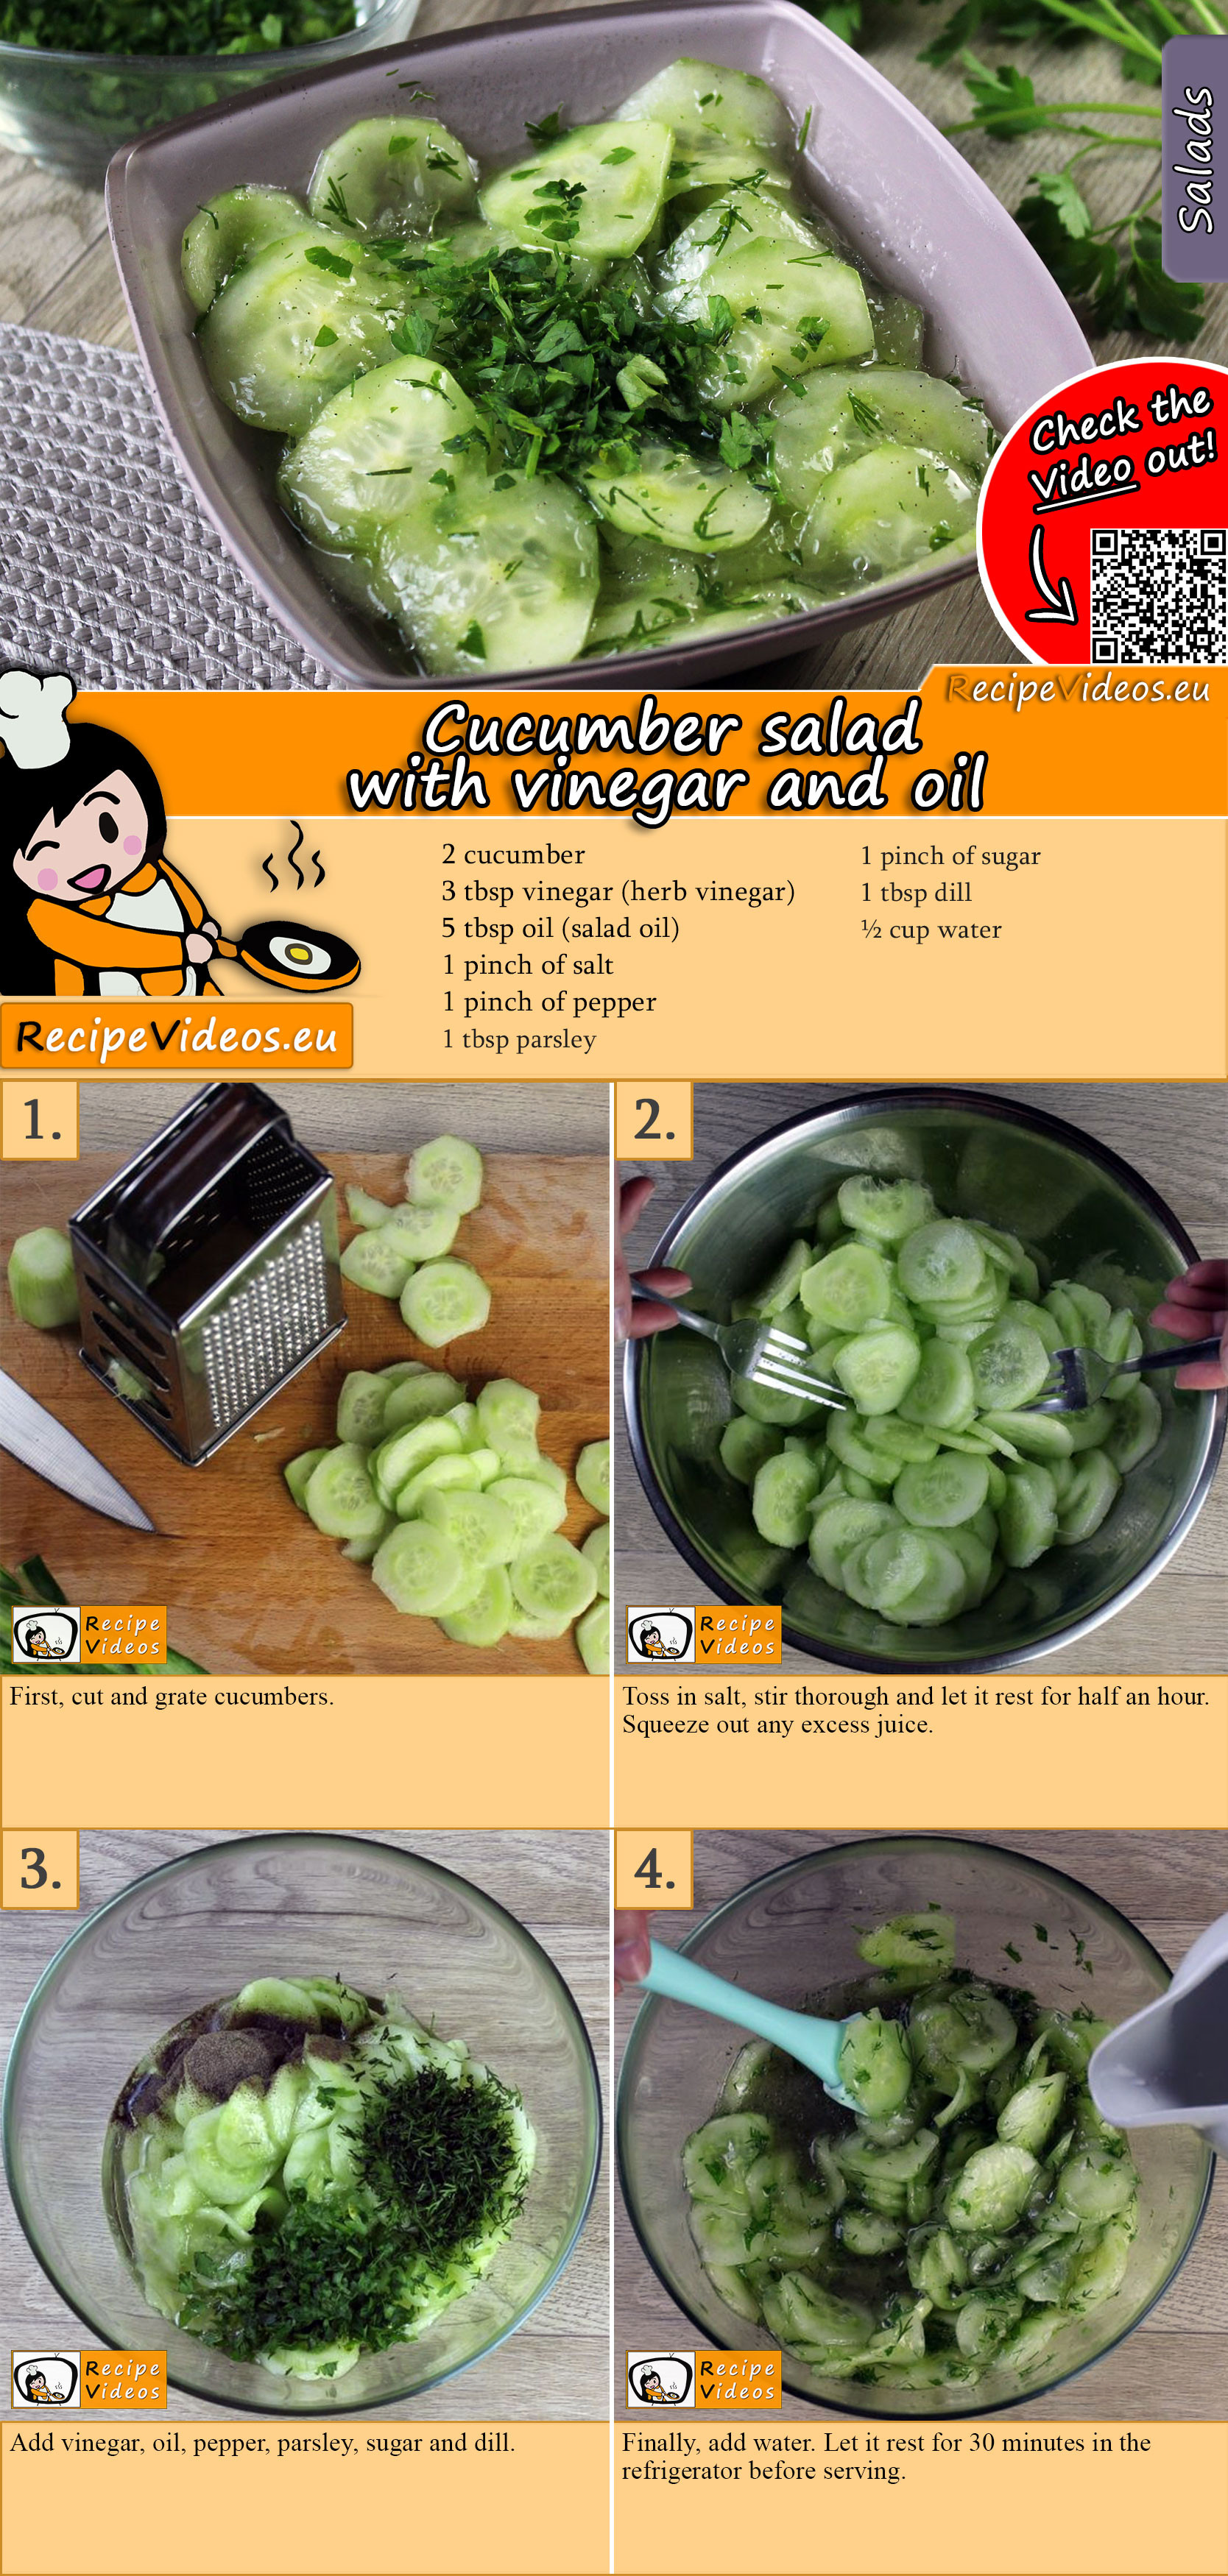 Cucumber salad with vinegar and oil recipe with video